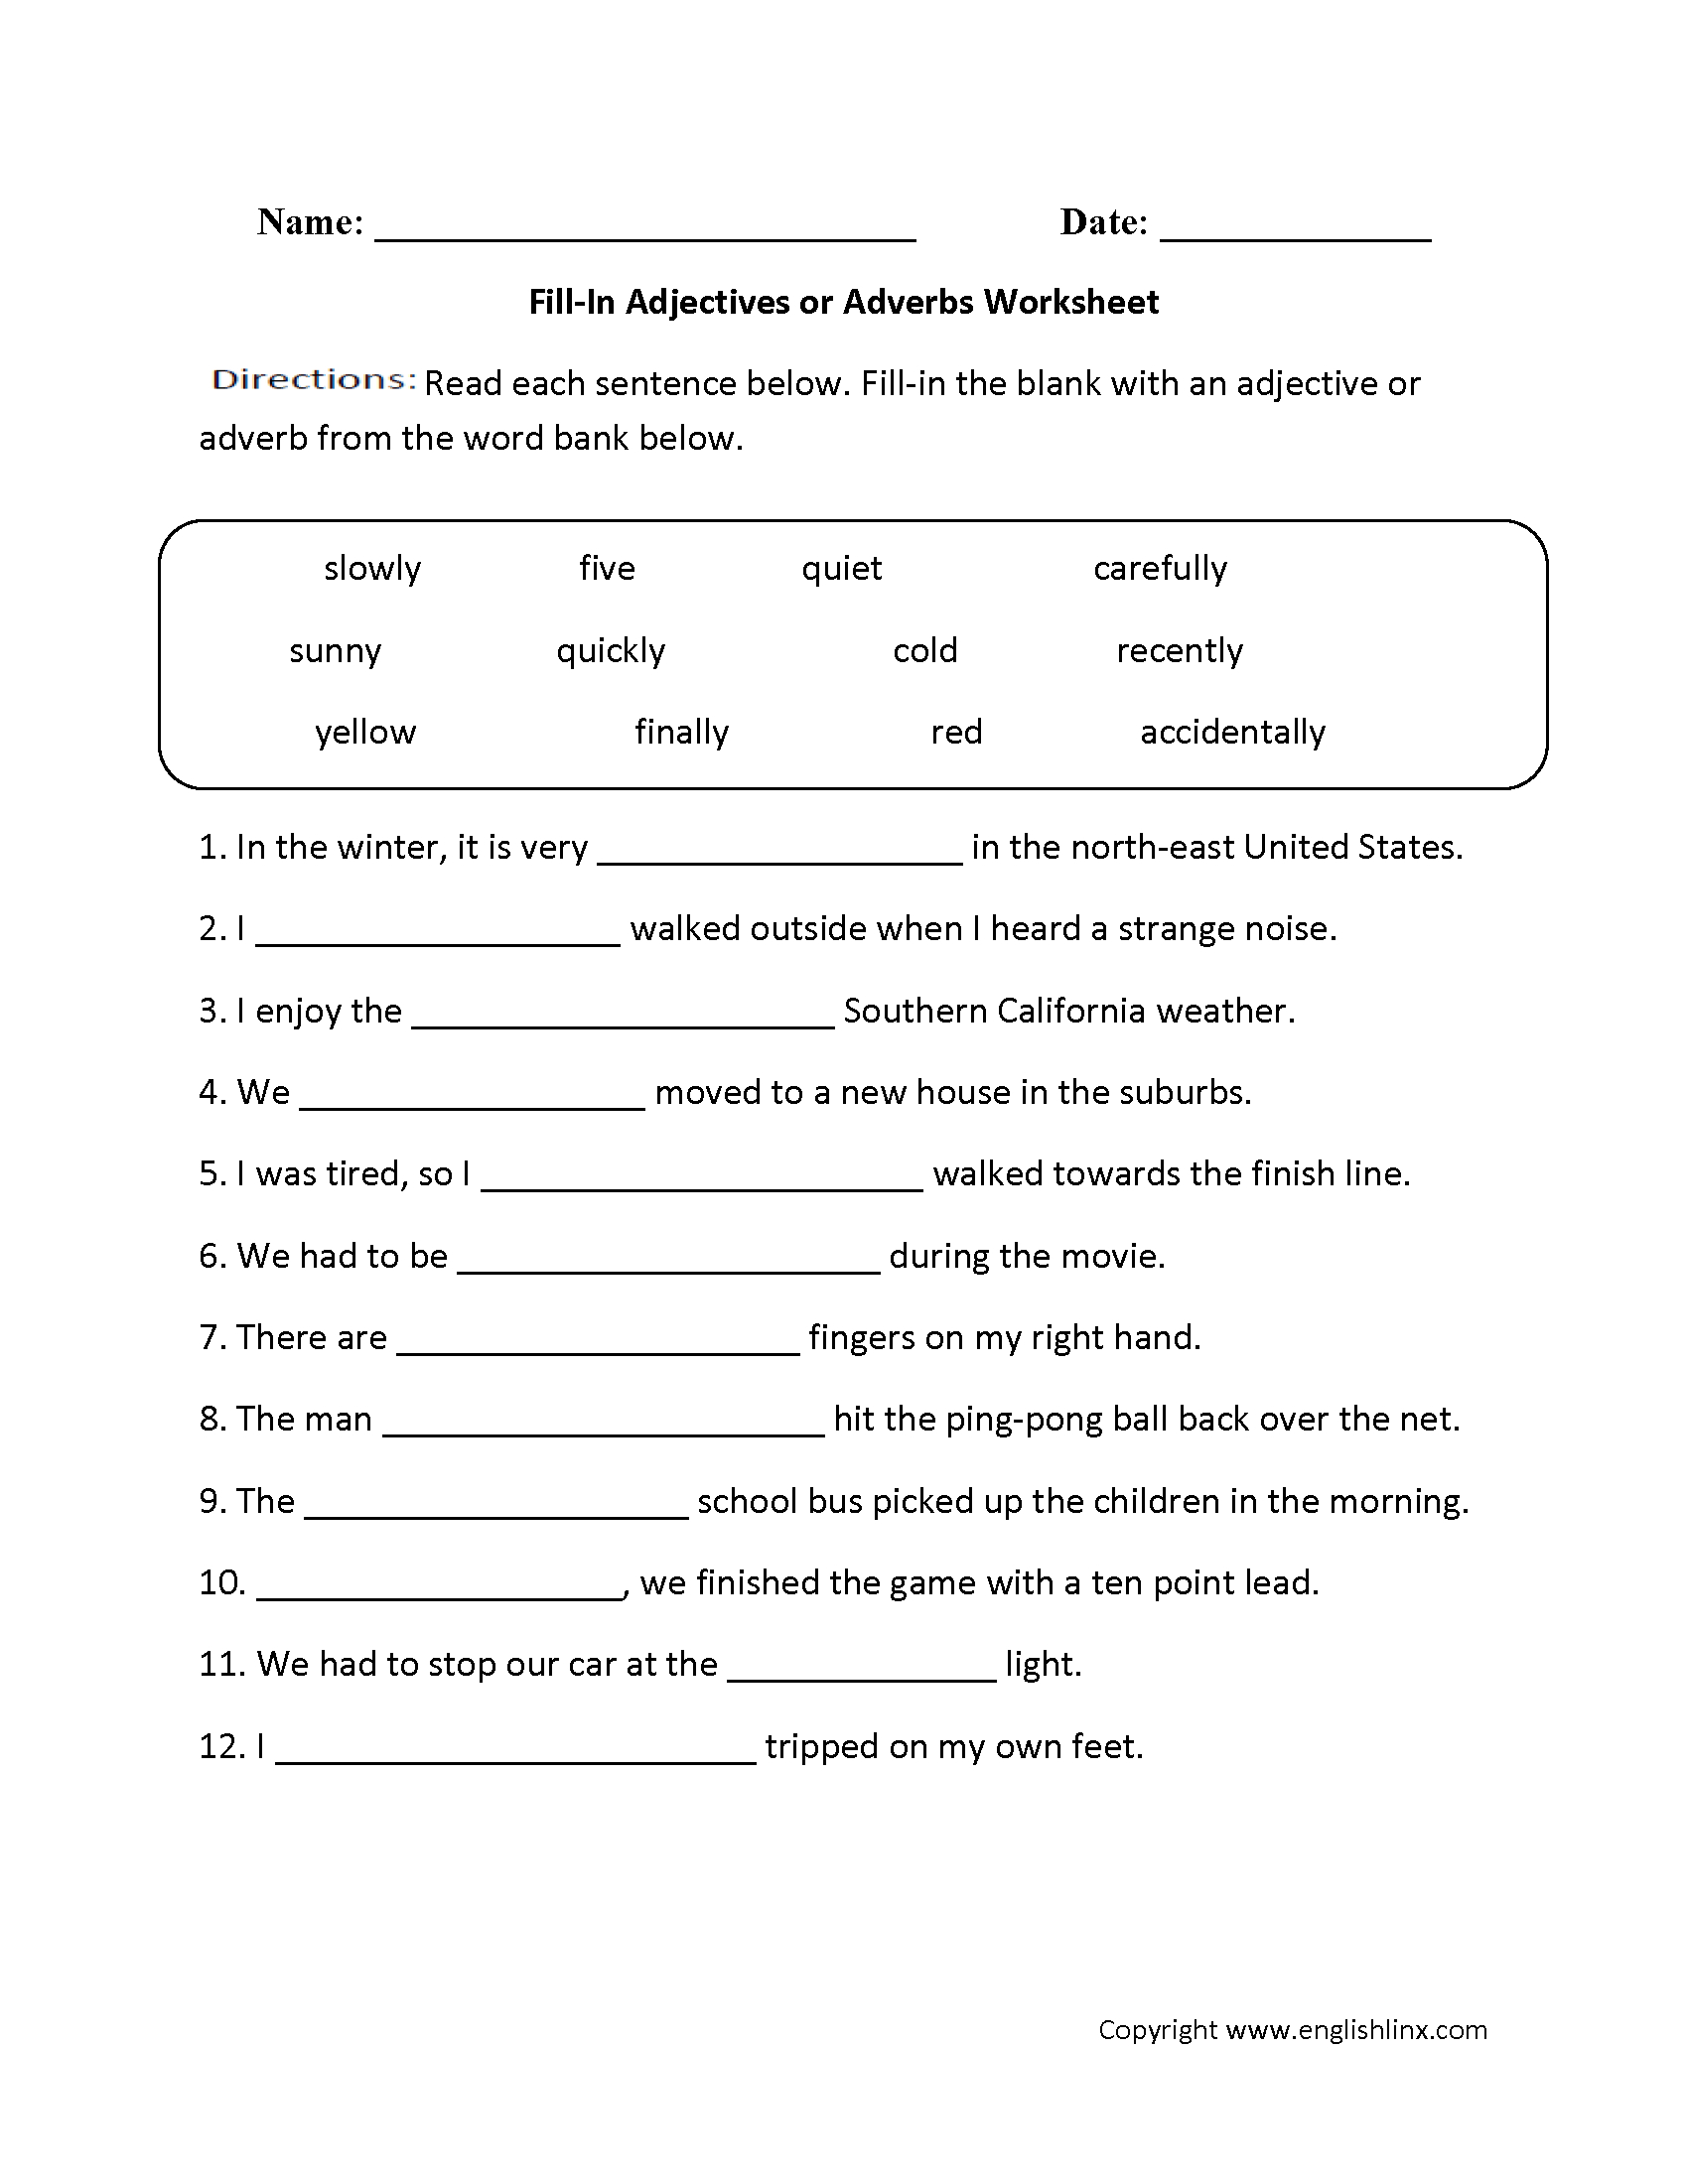 Adjectives Worksheets  Adjectives Or Adverbs Worksheets Also Adverb Worksheets Pdf